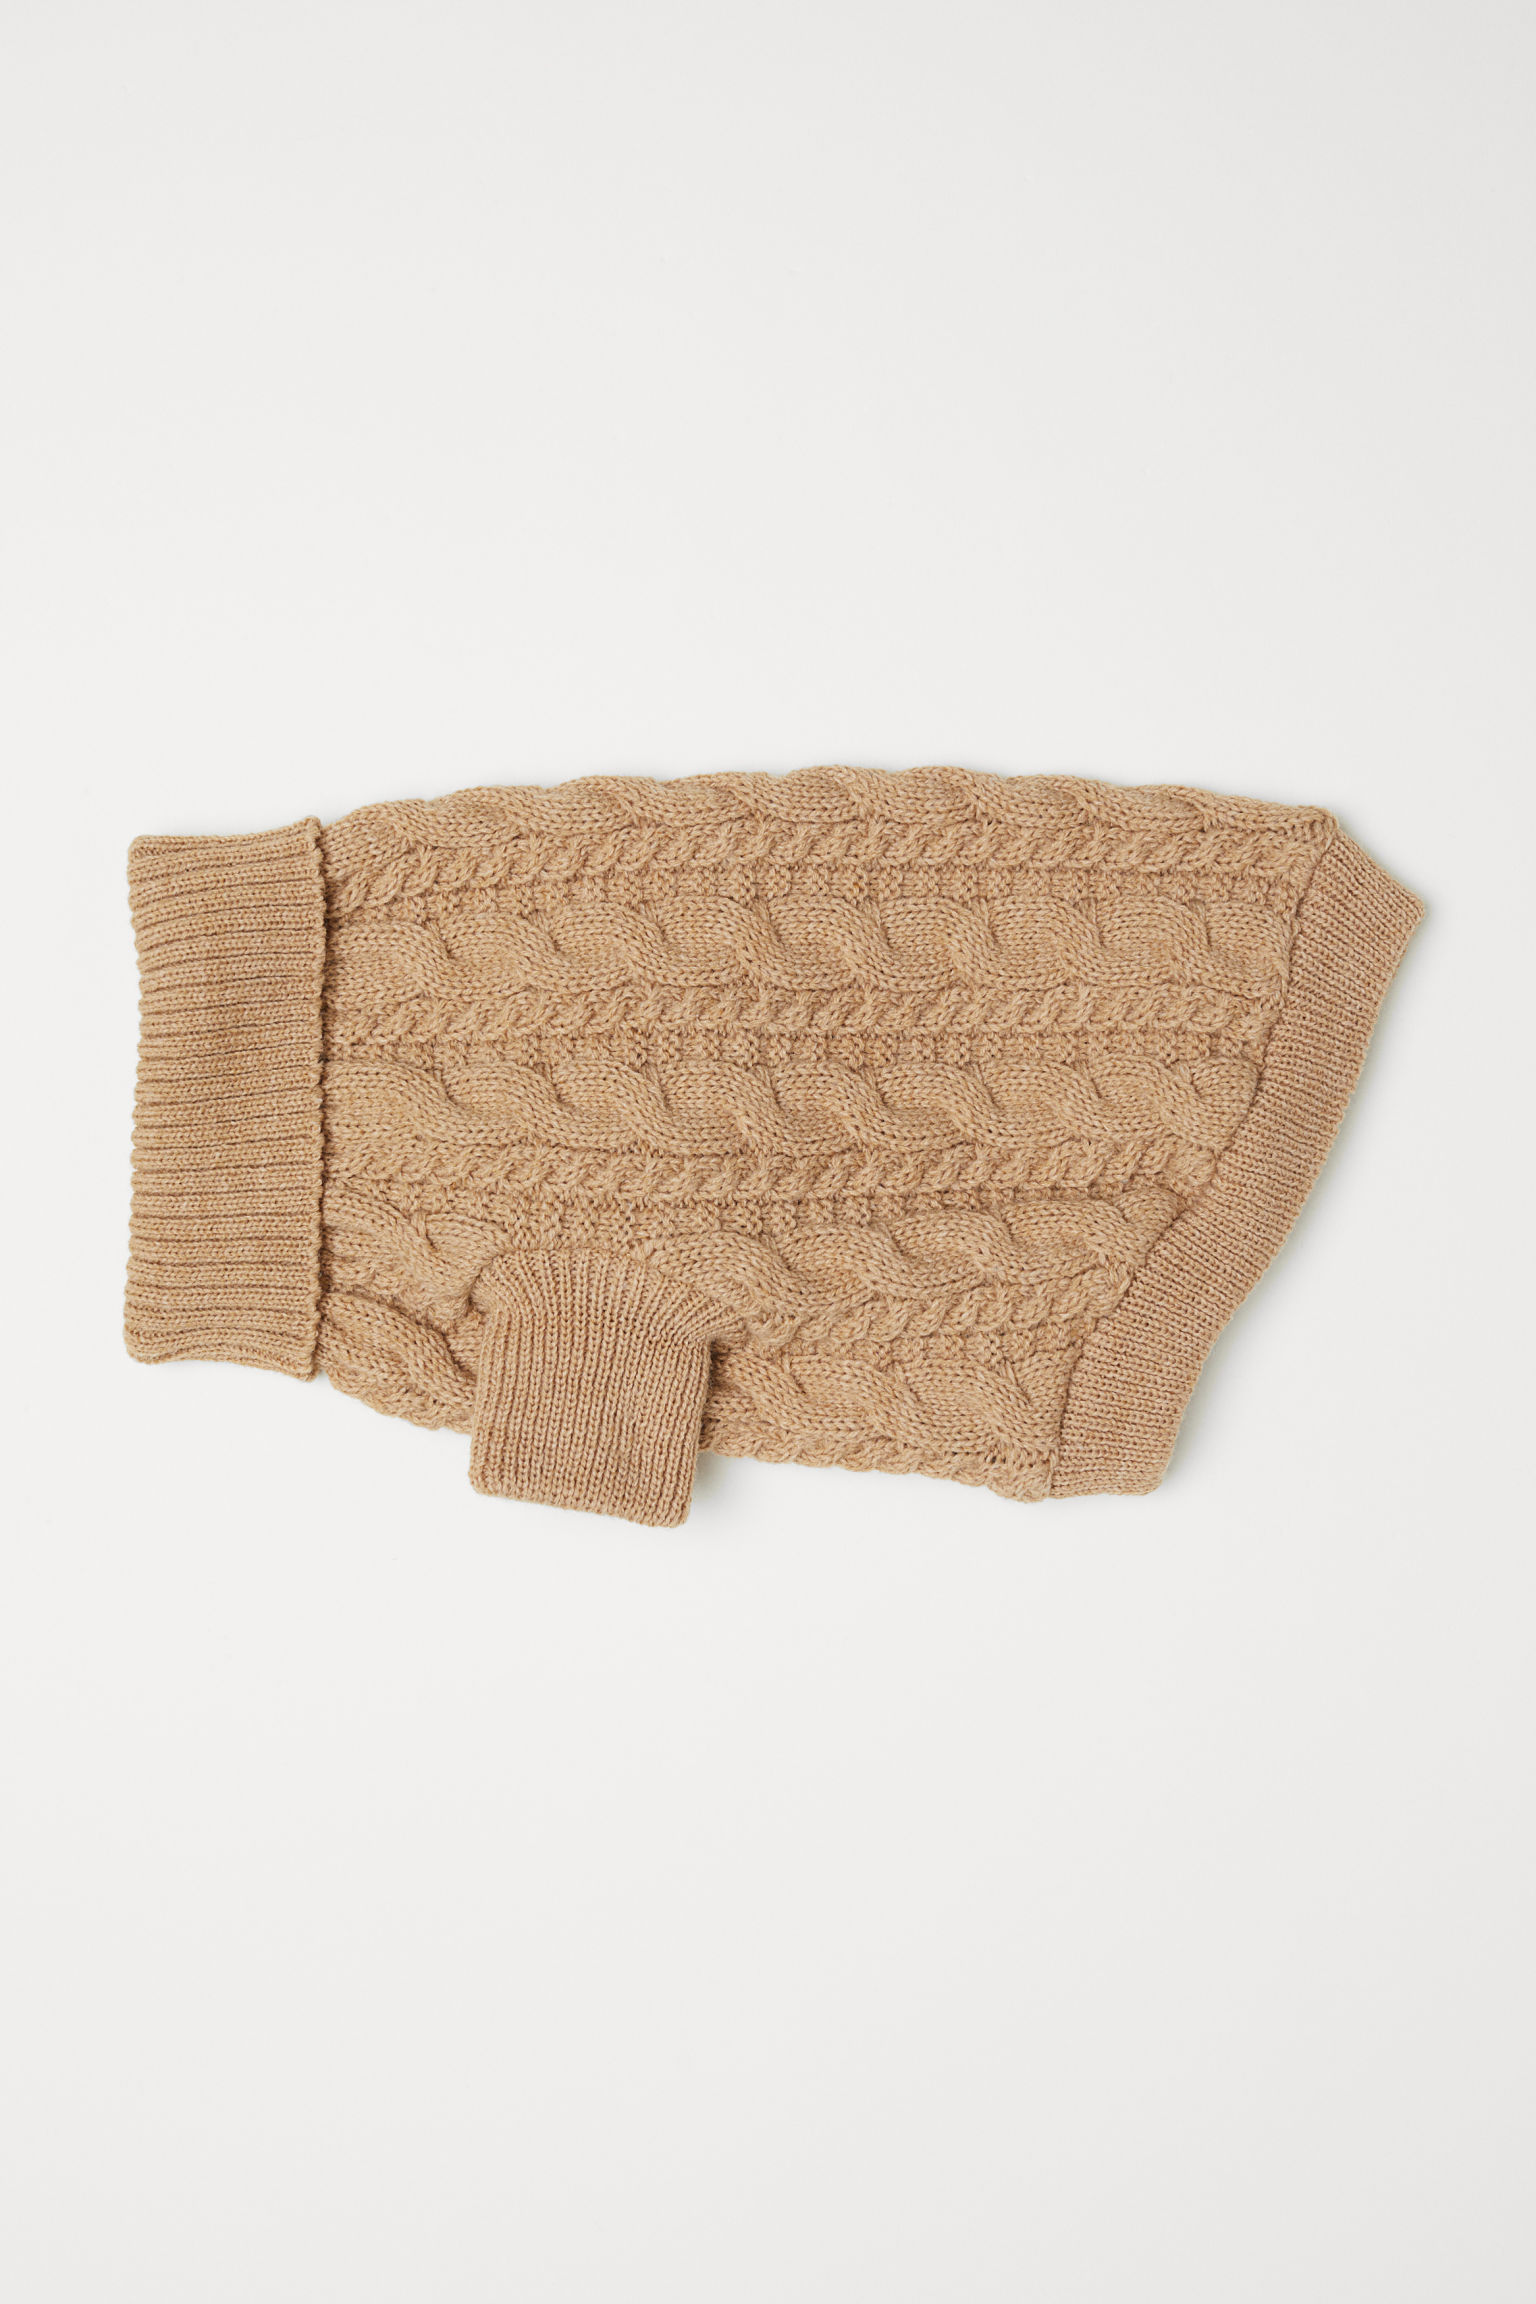 H&M Cable-knit Dog Sweater